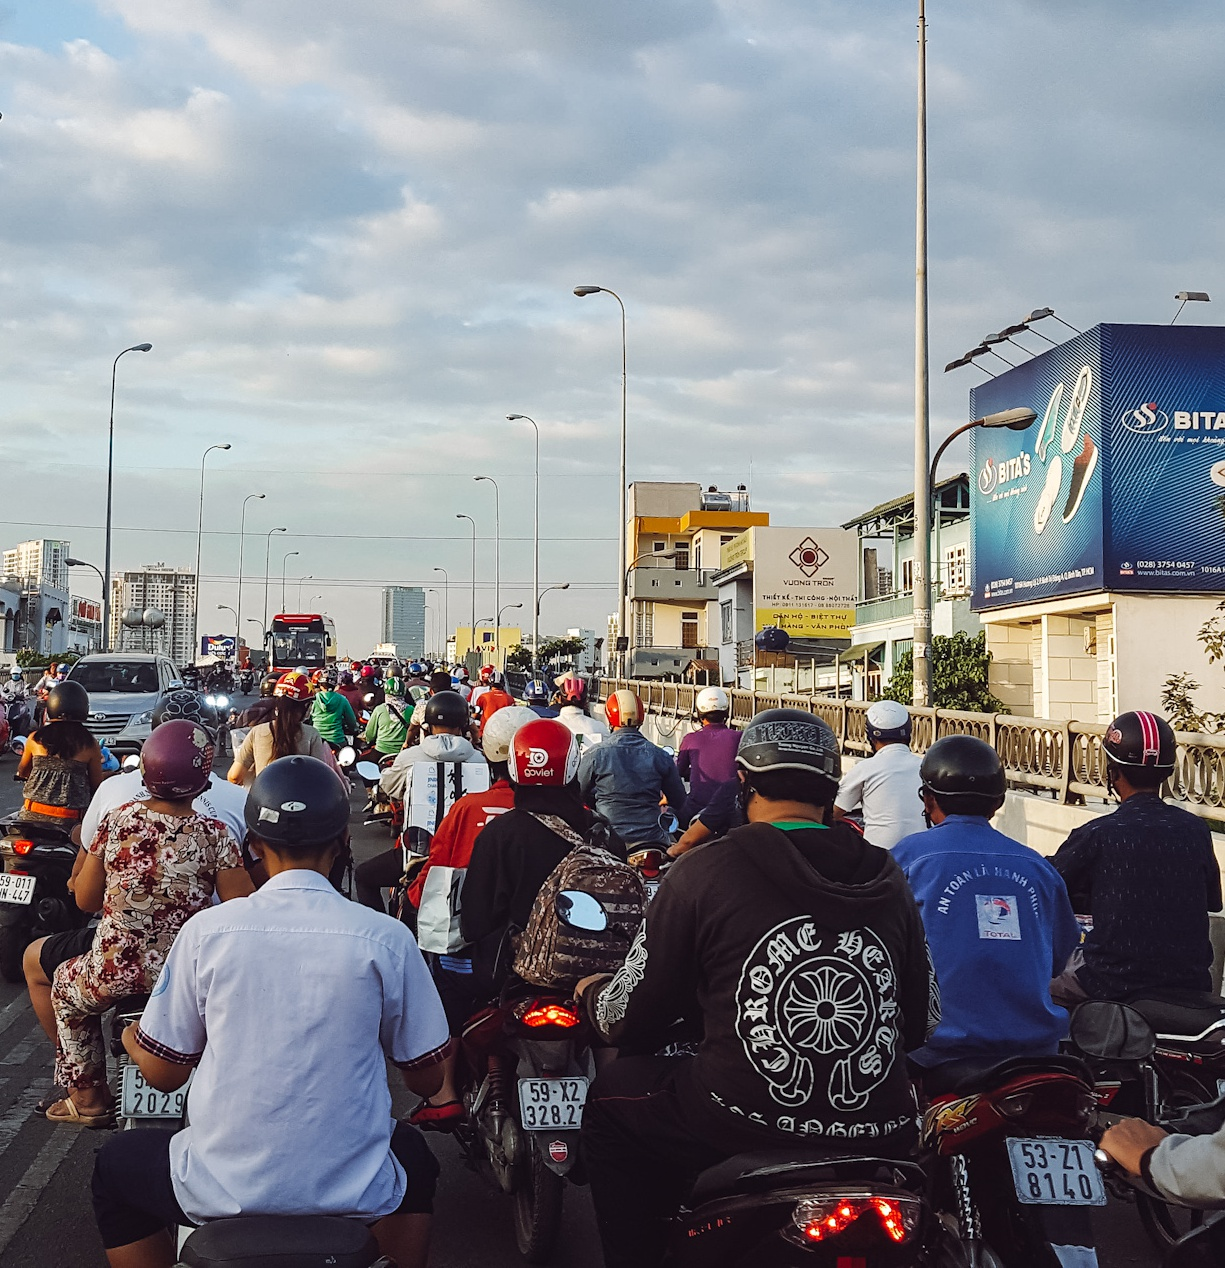 A lot of motorbike traffic in Ho Chi Minh City